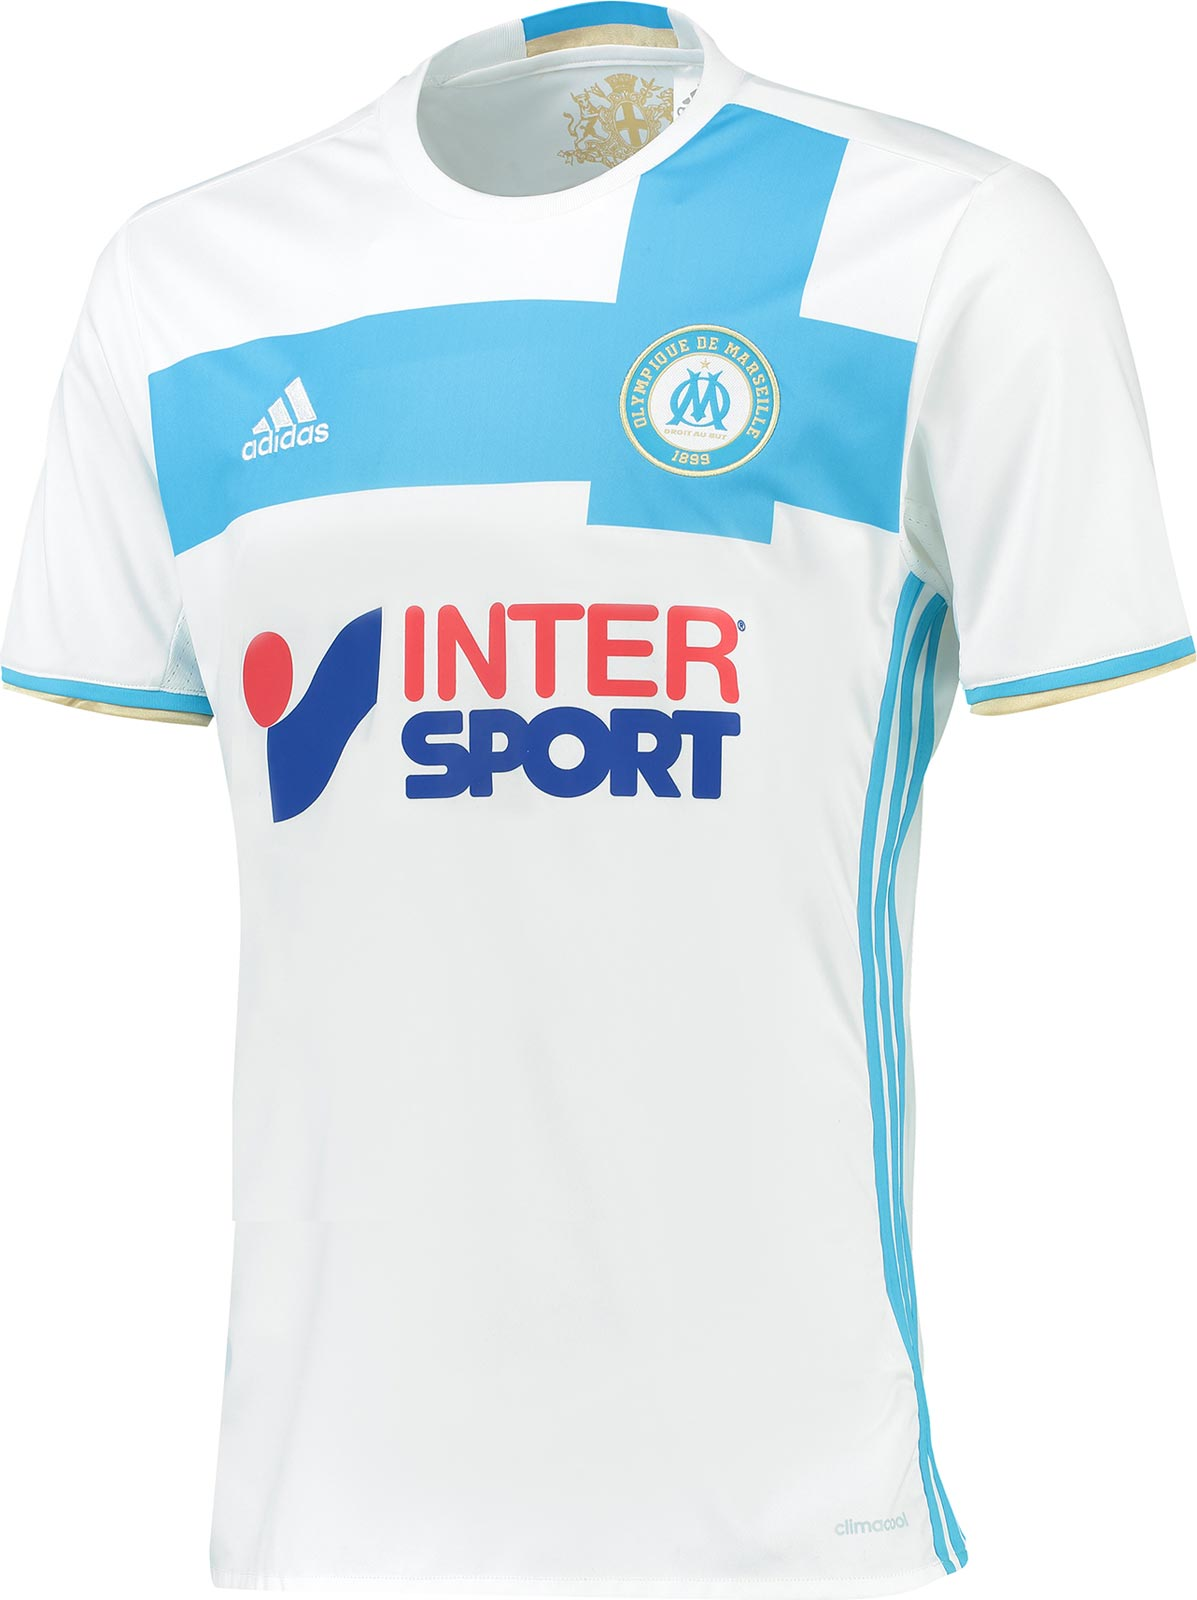 olympique marseille 16 17 kits released footy headlines. Black Bedroom Furniture Sets. Home Design Ideas